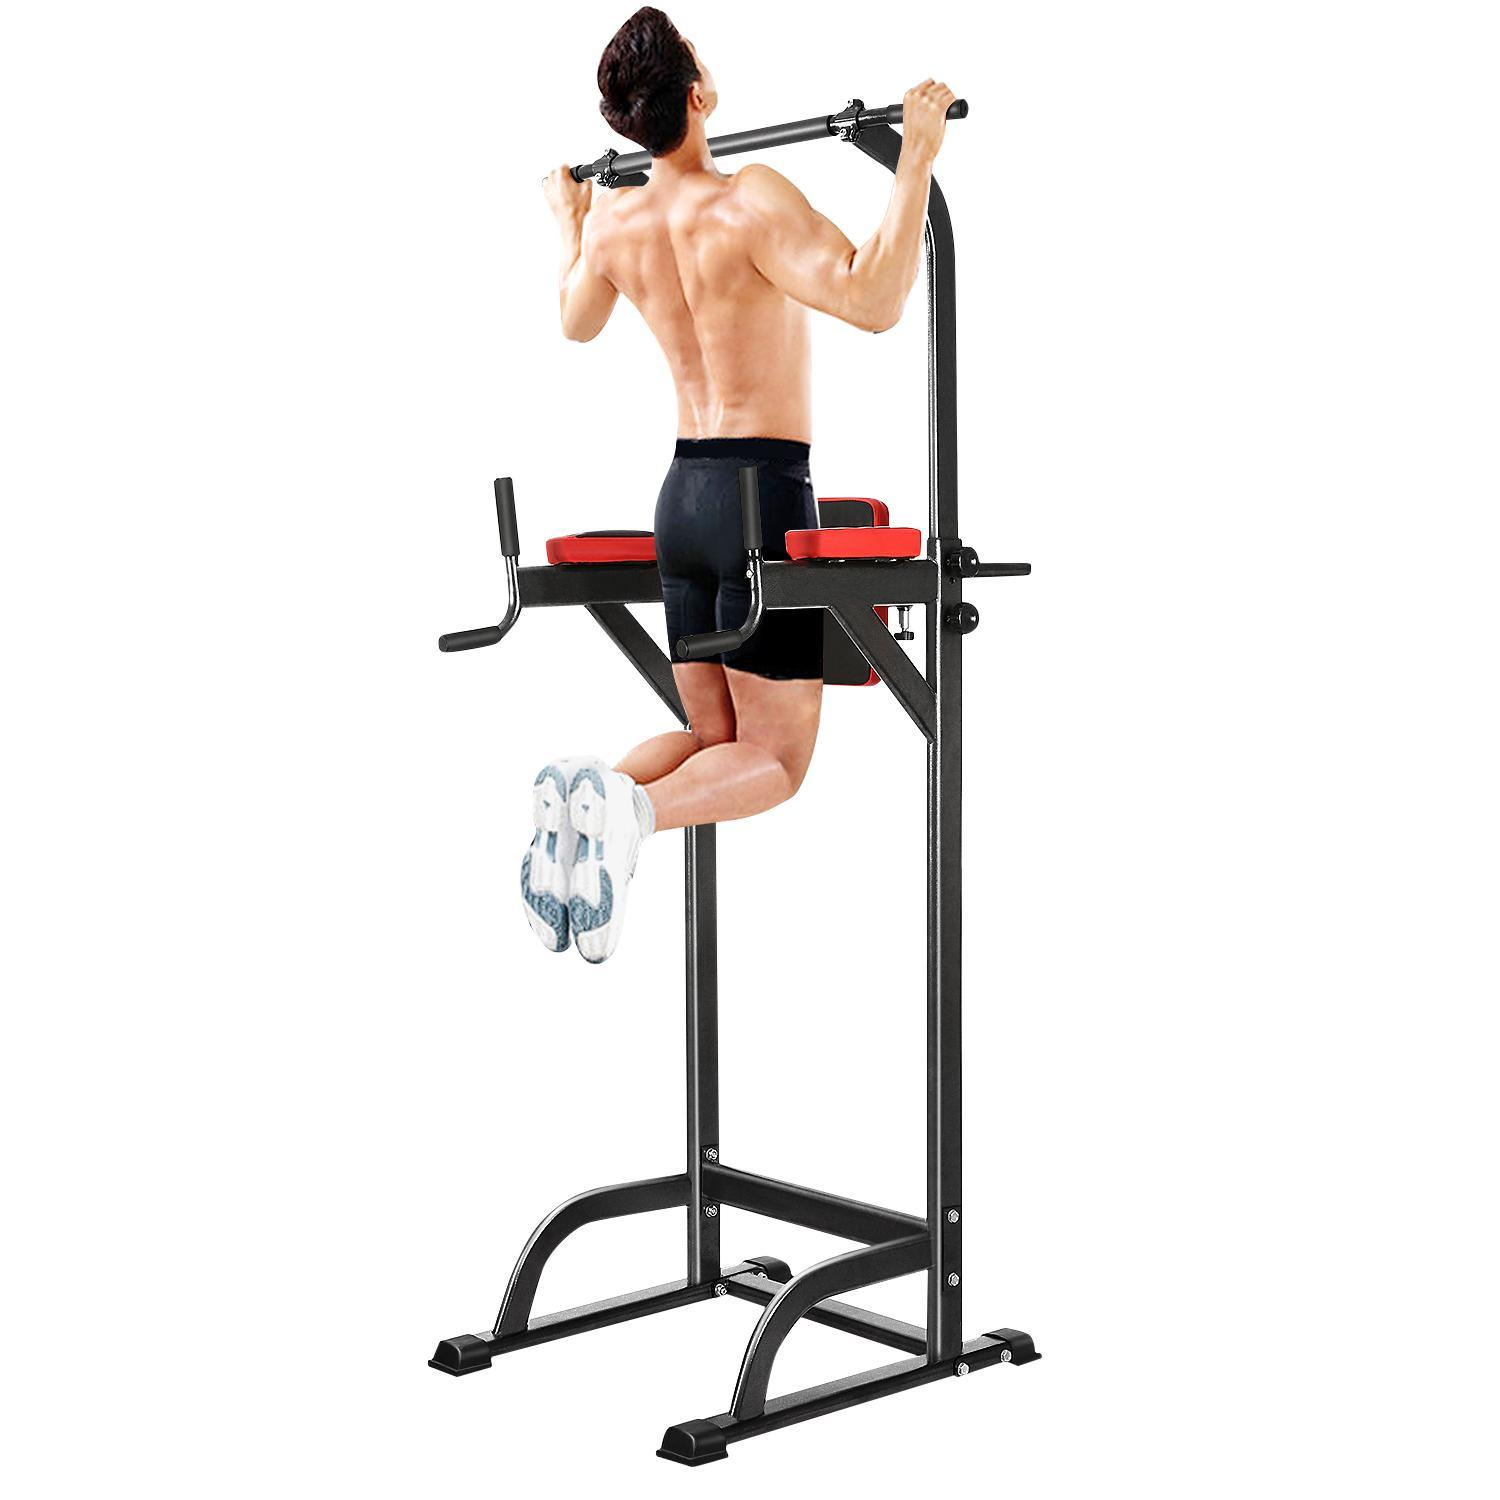 Chin Up Bar Adjustable Abs Workout Knee Crunch Triceps Station Power Tower (black)